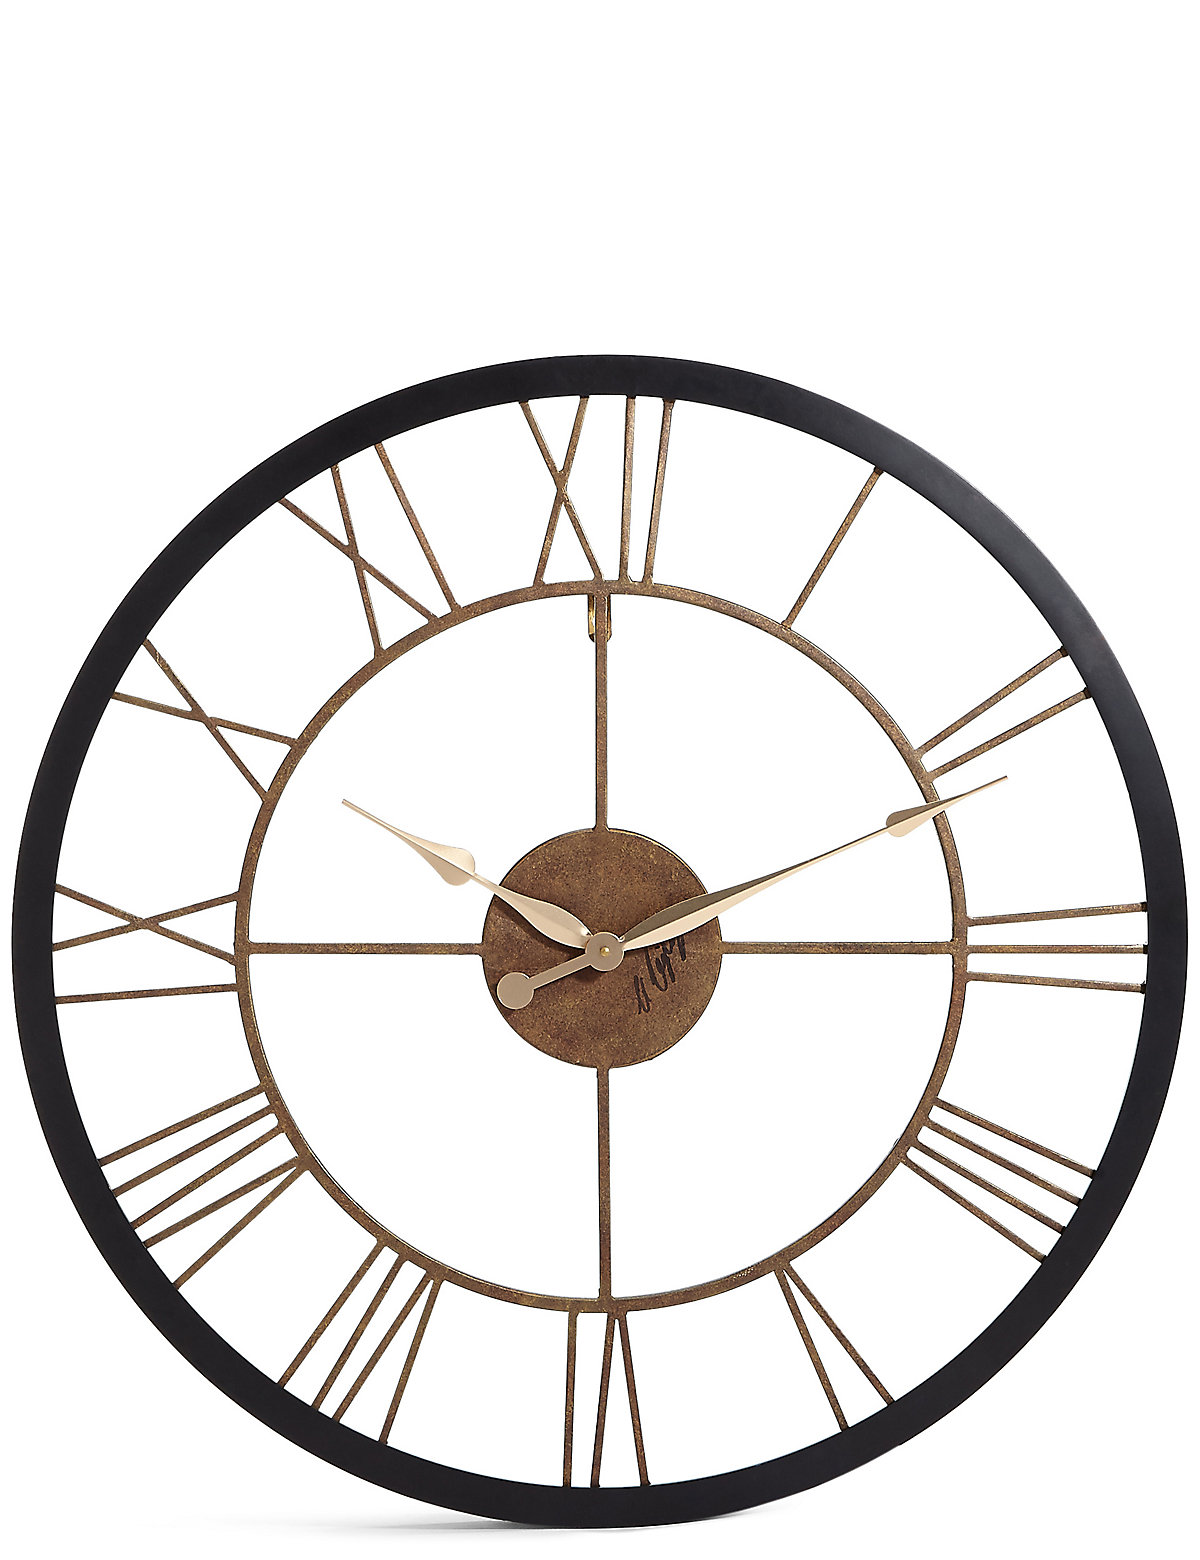 Mirrors wall art clocks for your home ms rustic wall clock amipublicfo Gallery